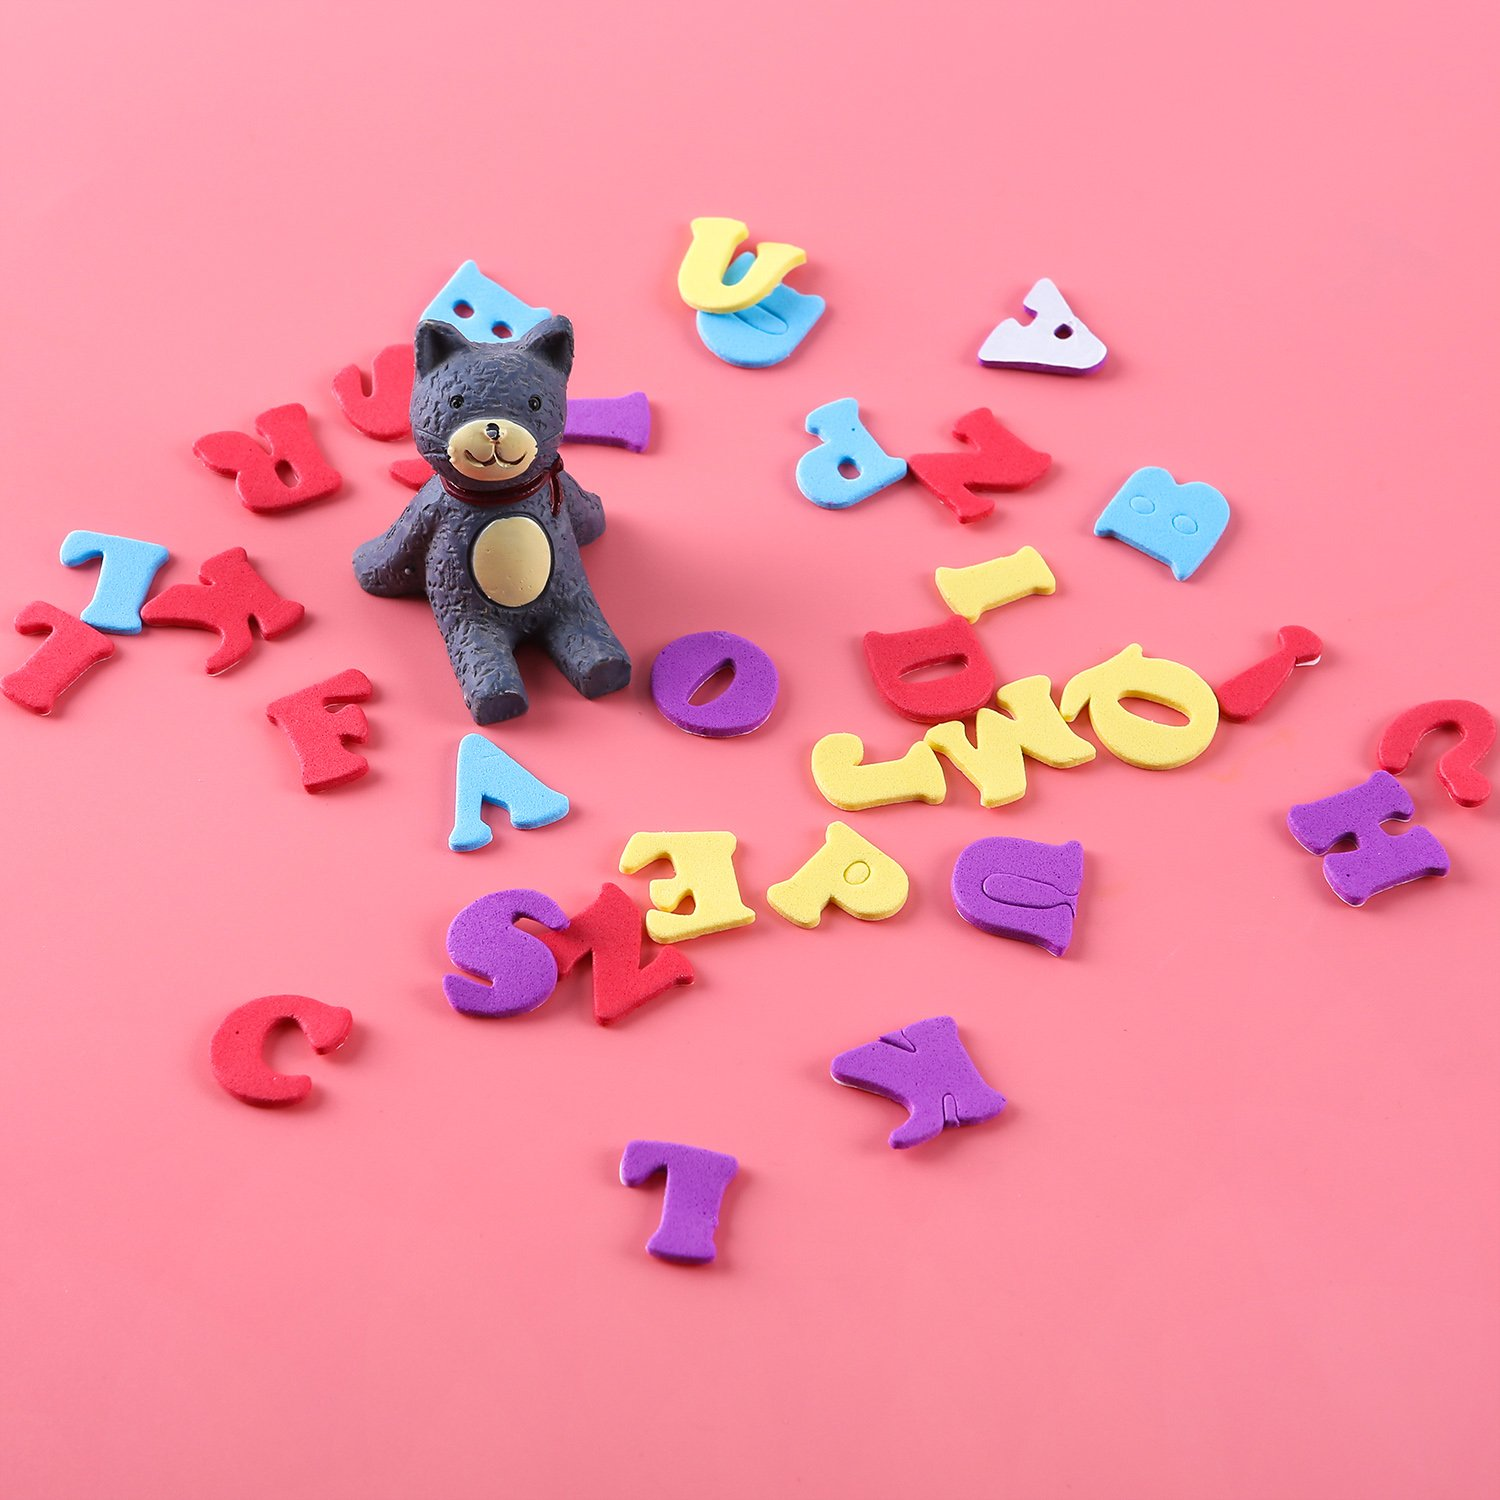 Aneco 624 Pieces Adhesive Foam Letters Self-Adhesive Letter Stickers ...